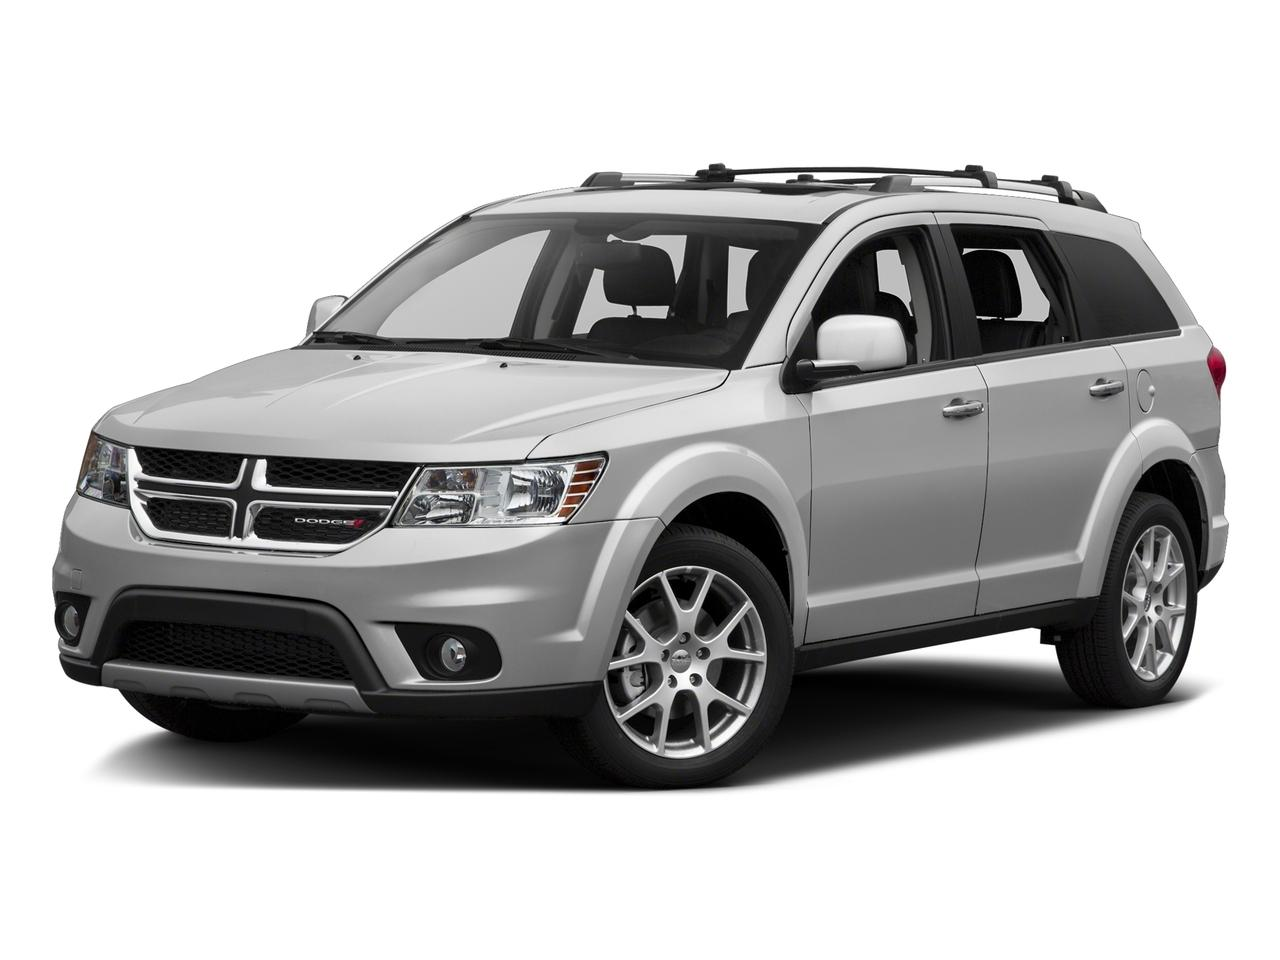 2016 Dodge Journey Vehicle Photo in Vincennes, IN 47591